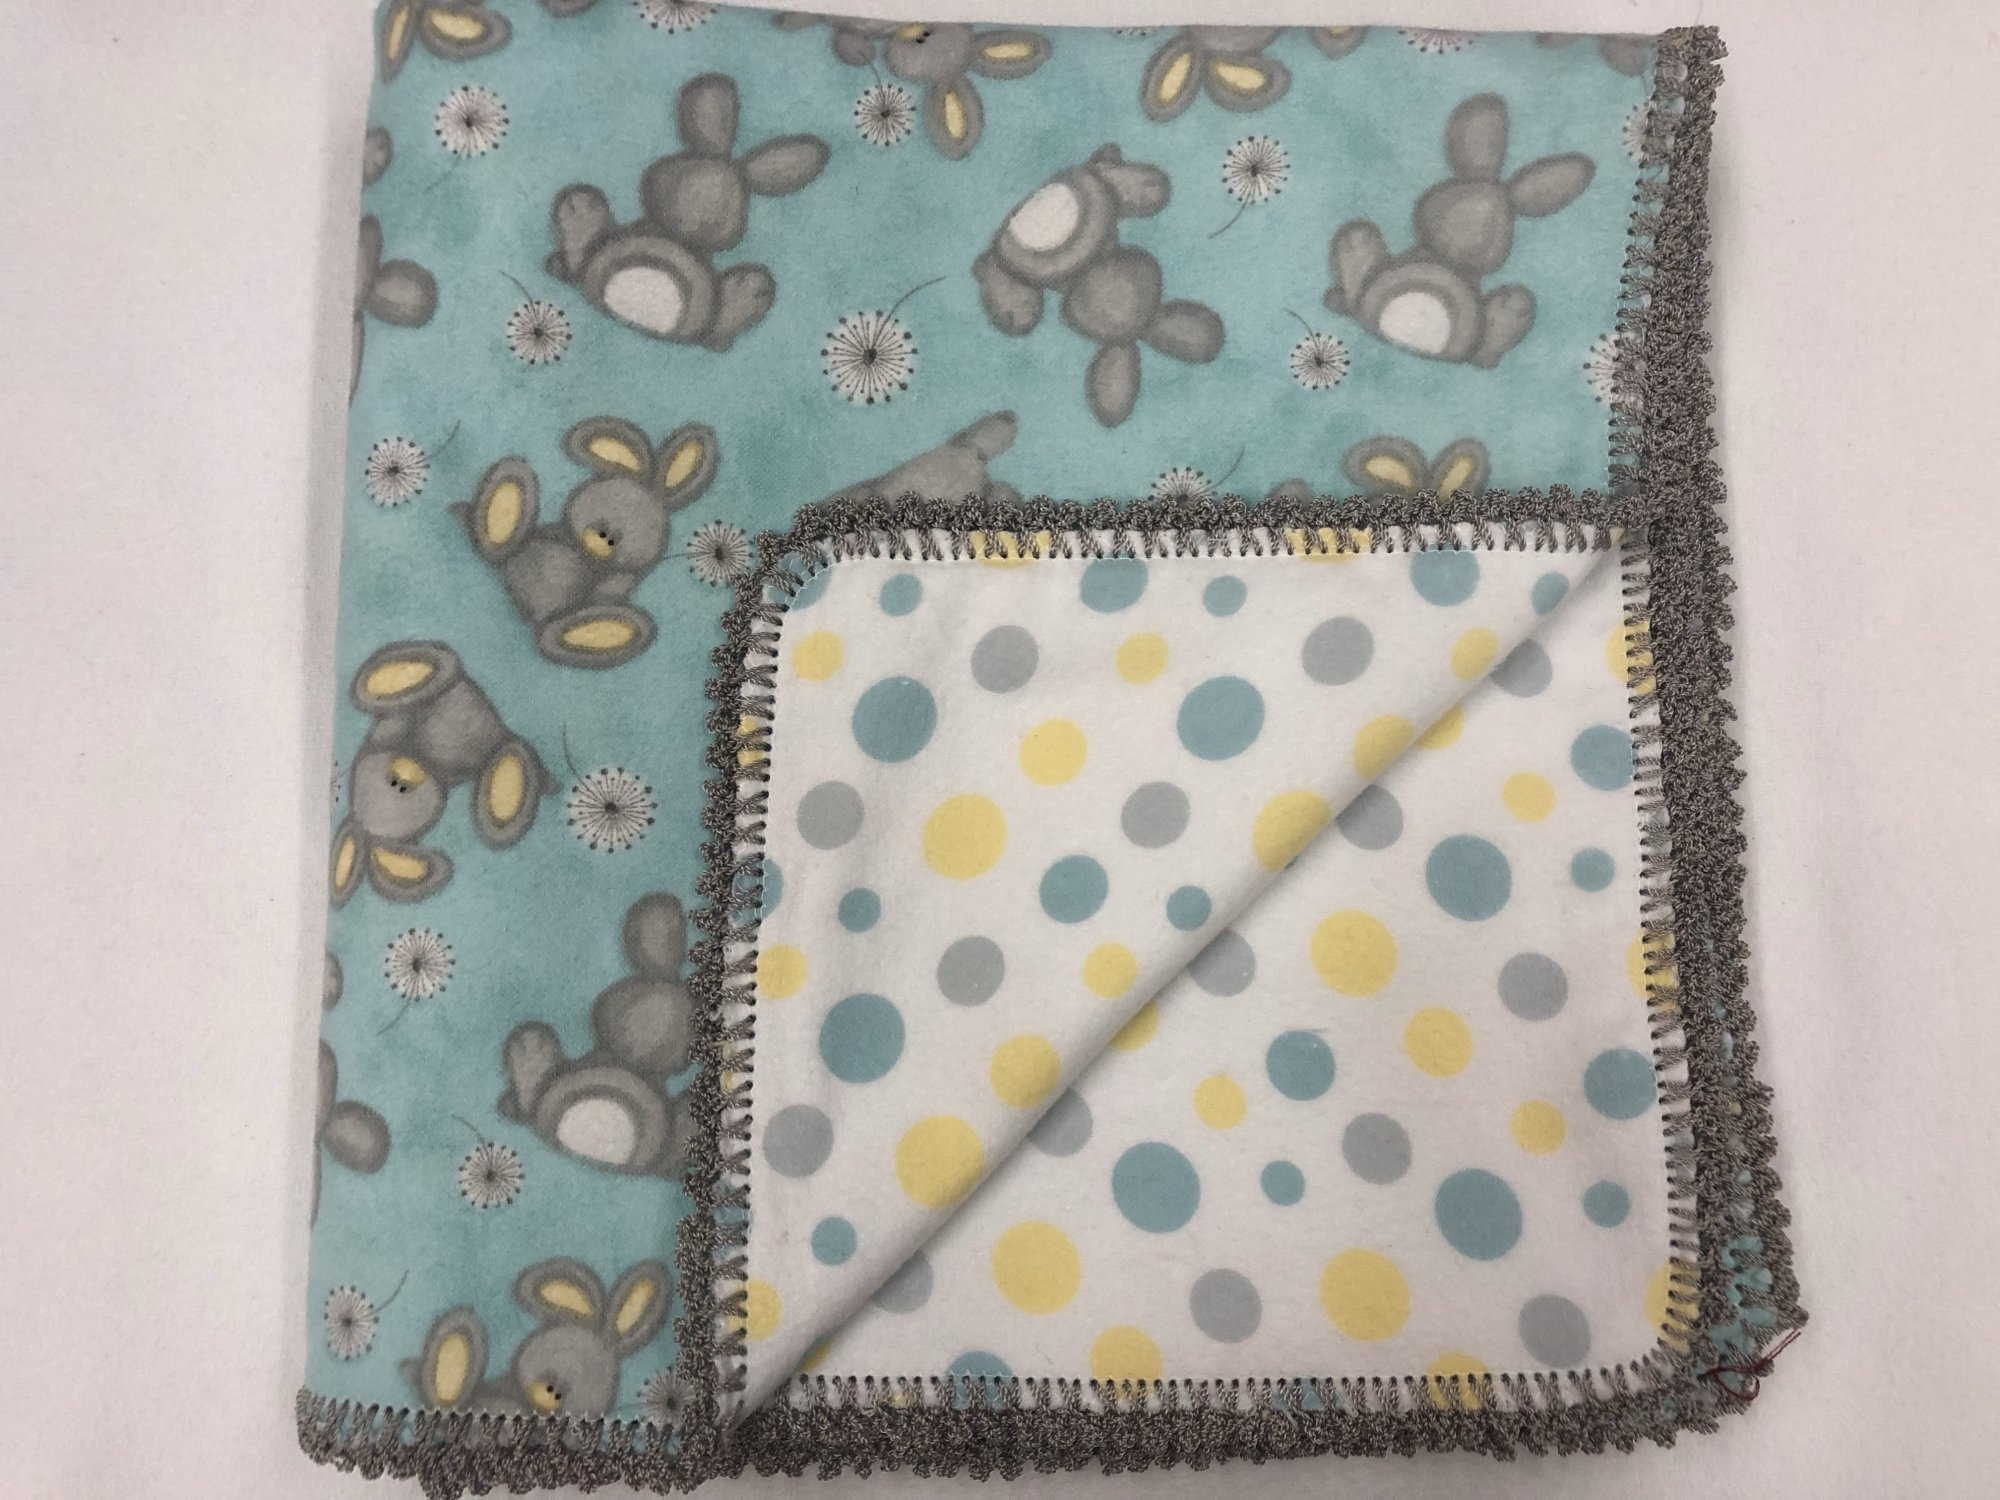 Bunnies with dandelion on blue/Blue and yellow dots on white background crocheted blanket